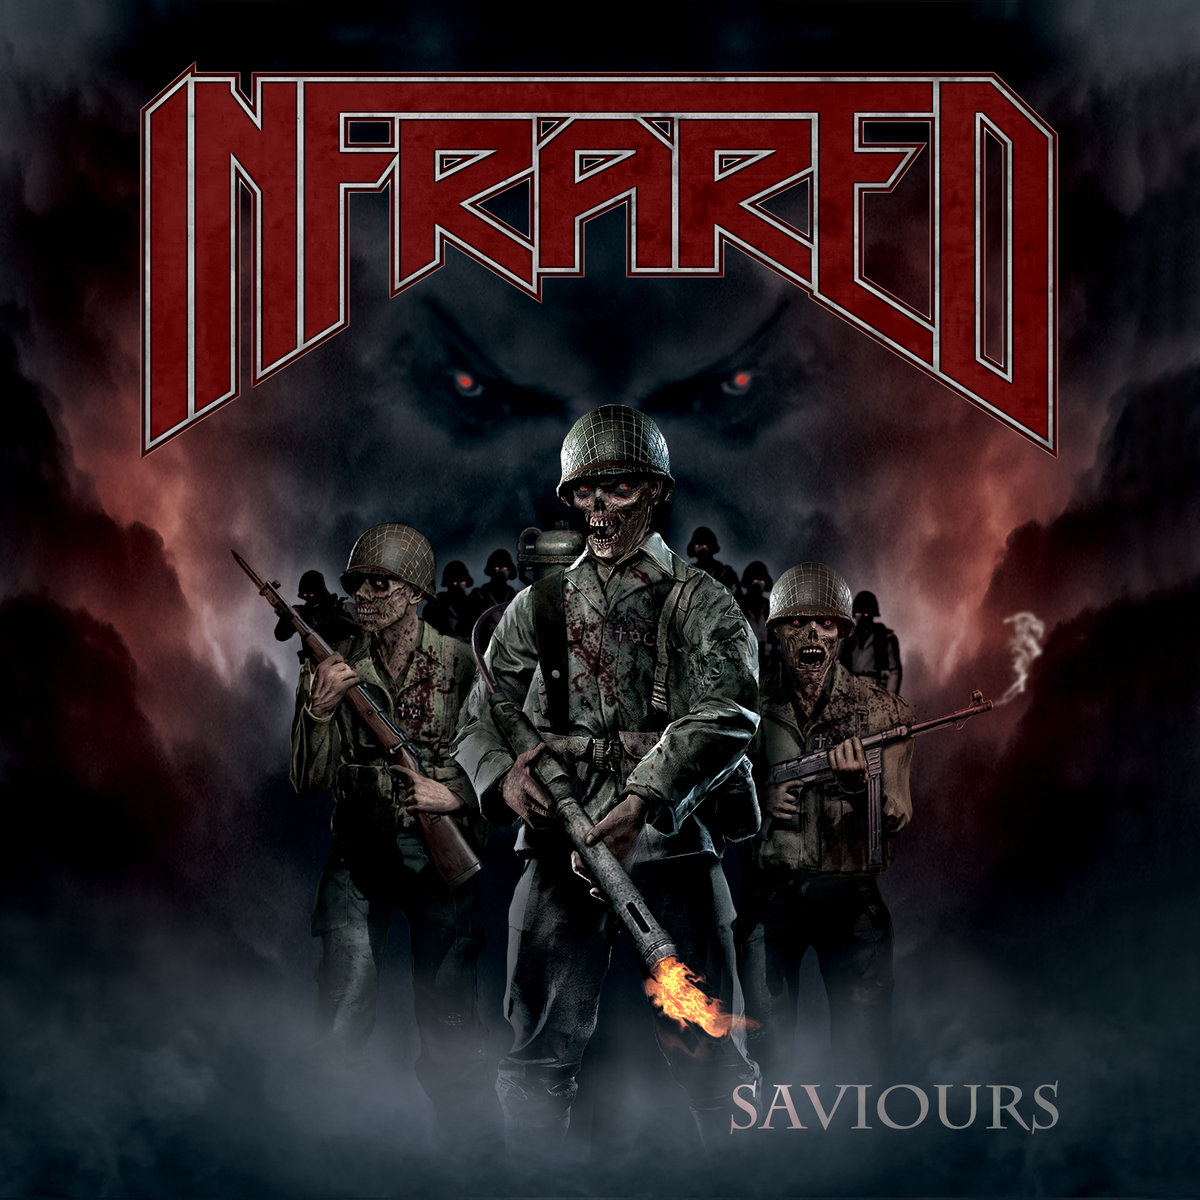 INFRARED Saviours (2018) Thrash Metal CANADA A0096610